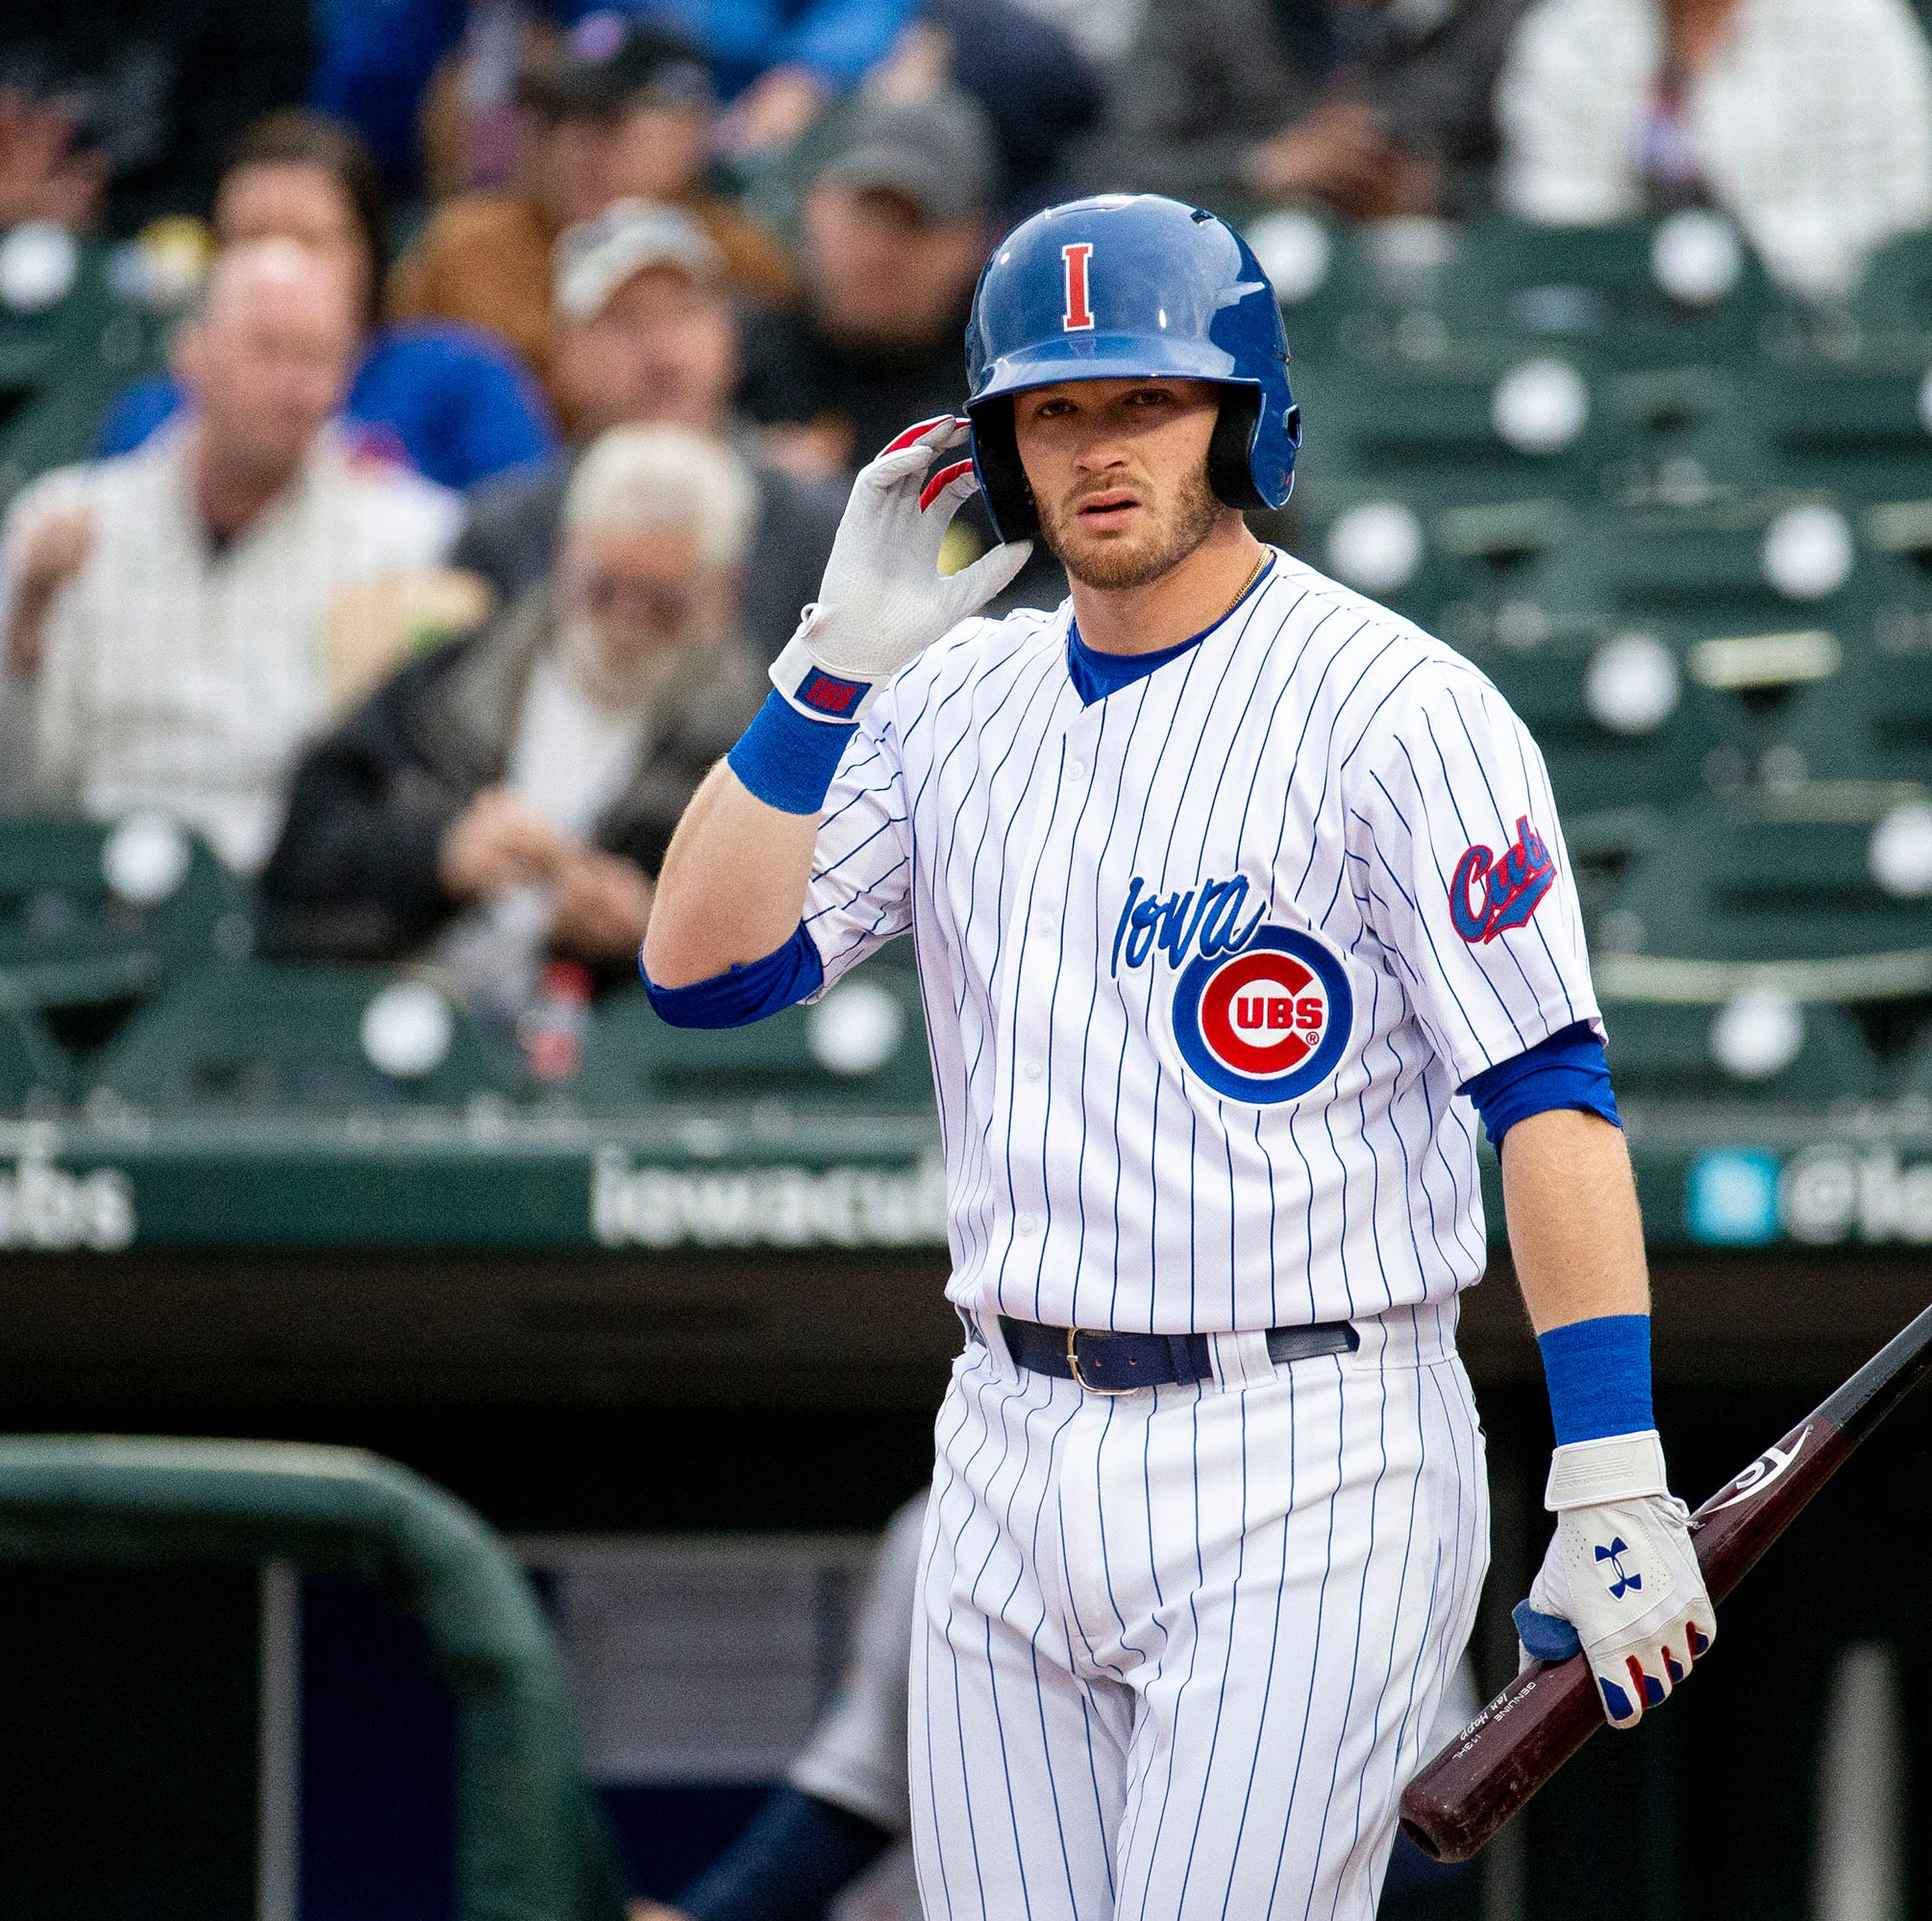 'He's going to be a big-league player in Chicago for a long time': Why there are still high hopes for Ian Happ